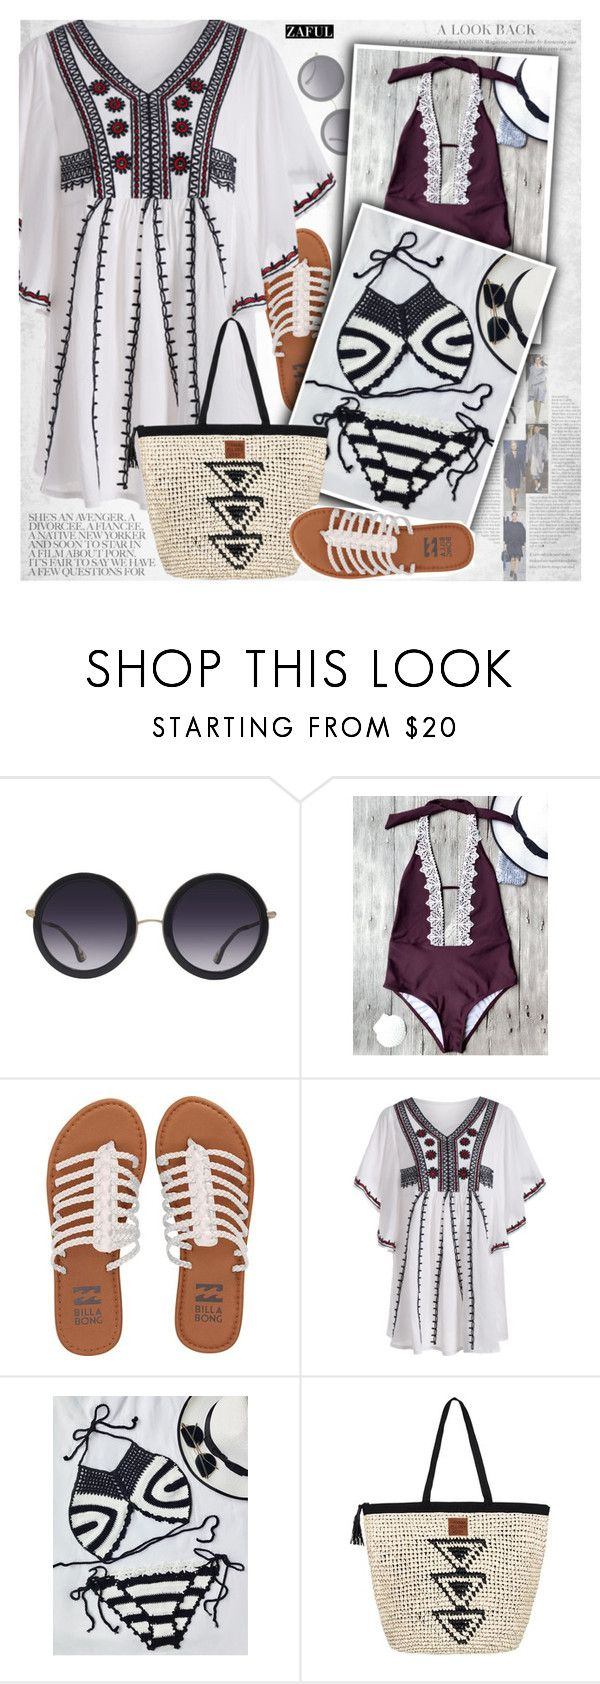 """Crochet bikini"" by vanjazivadinovic ❤ liked on Polyvore featuring Alice + Olivia, Billabong, Roxy, under100, polyvoreeditorial and zaful"